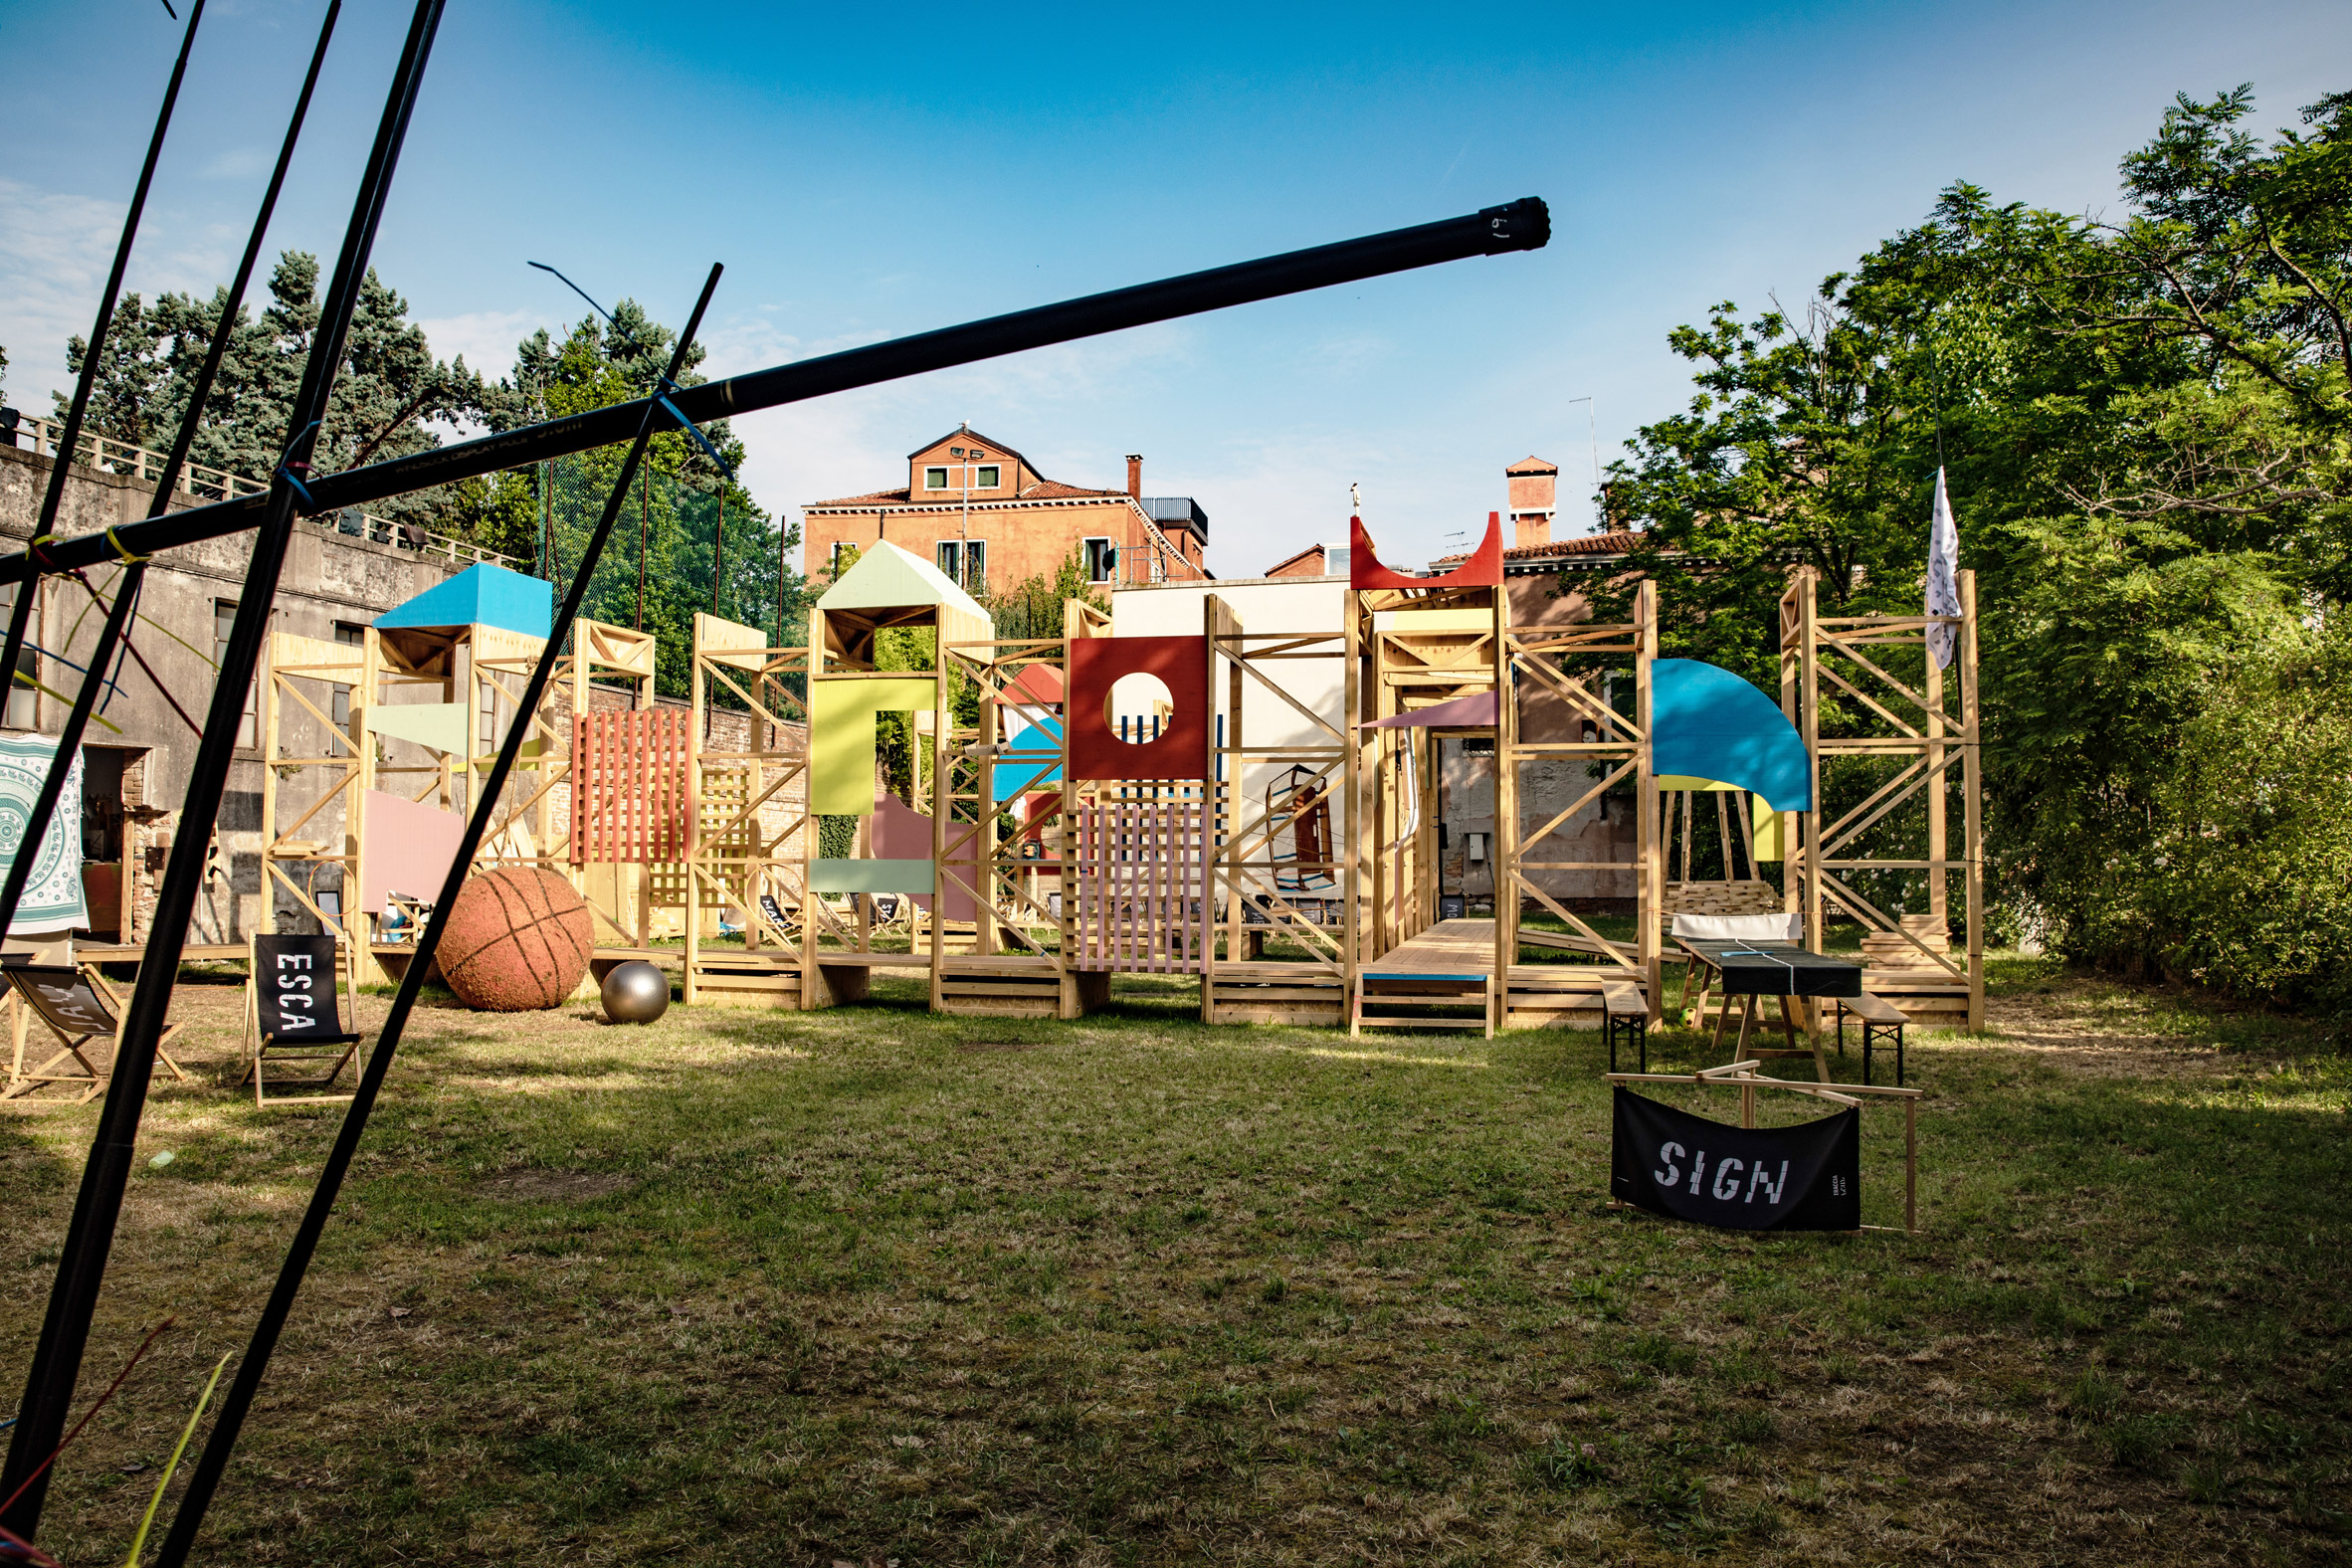 Baxendale's Venice outdoor playground made permanent for length of biennale